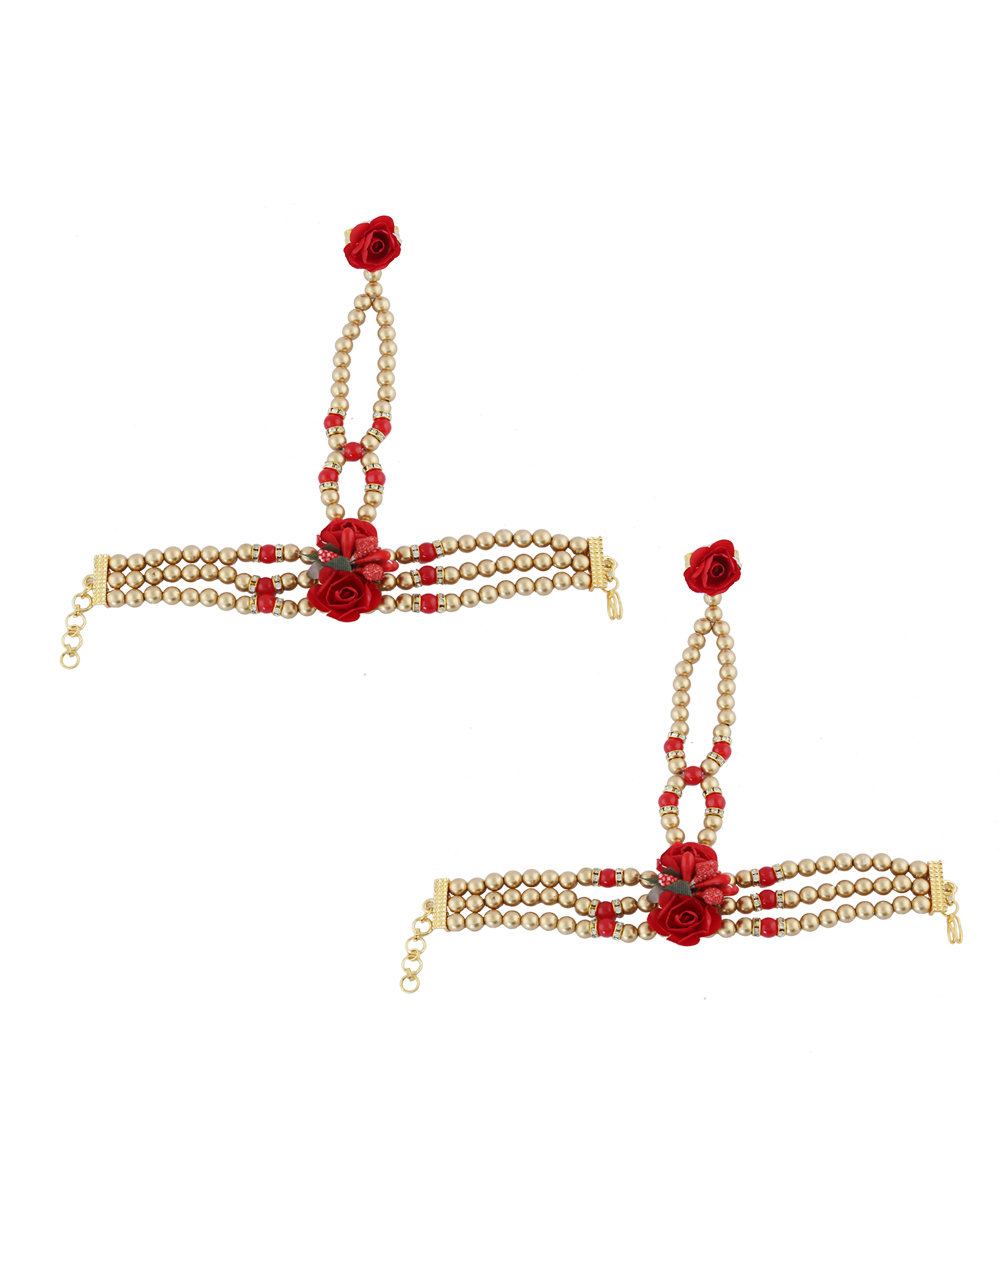 Red Colour Fancy Styled With Beads Flower Jewellery For Wedding